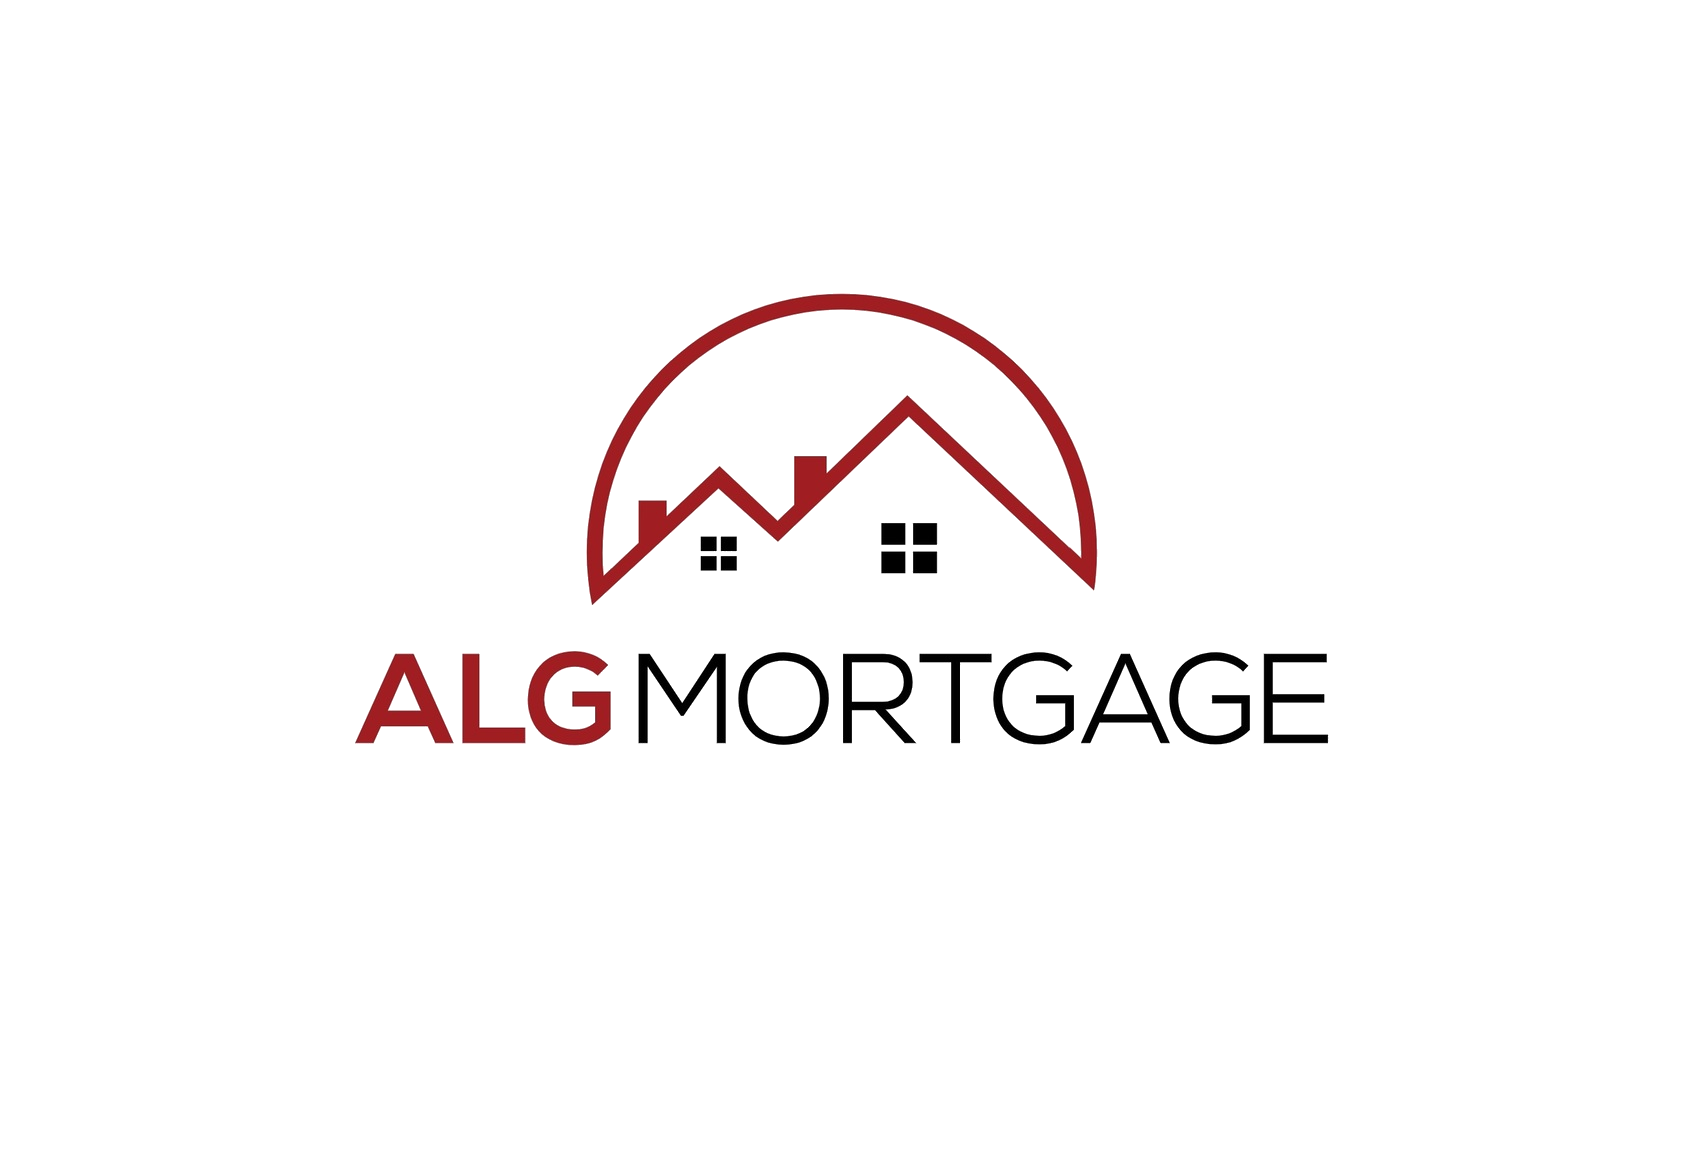 ALG Mortgage (SM - Transparent)